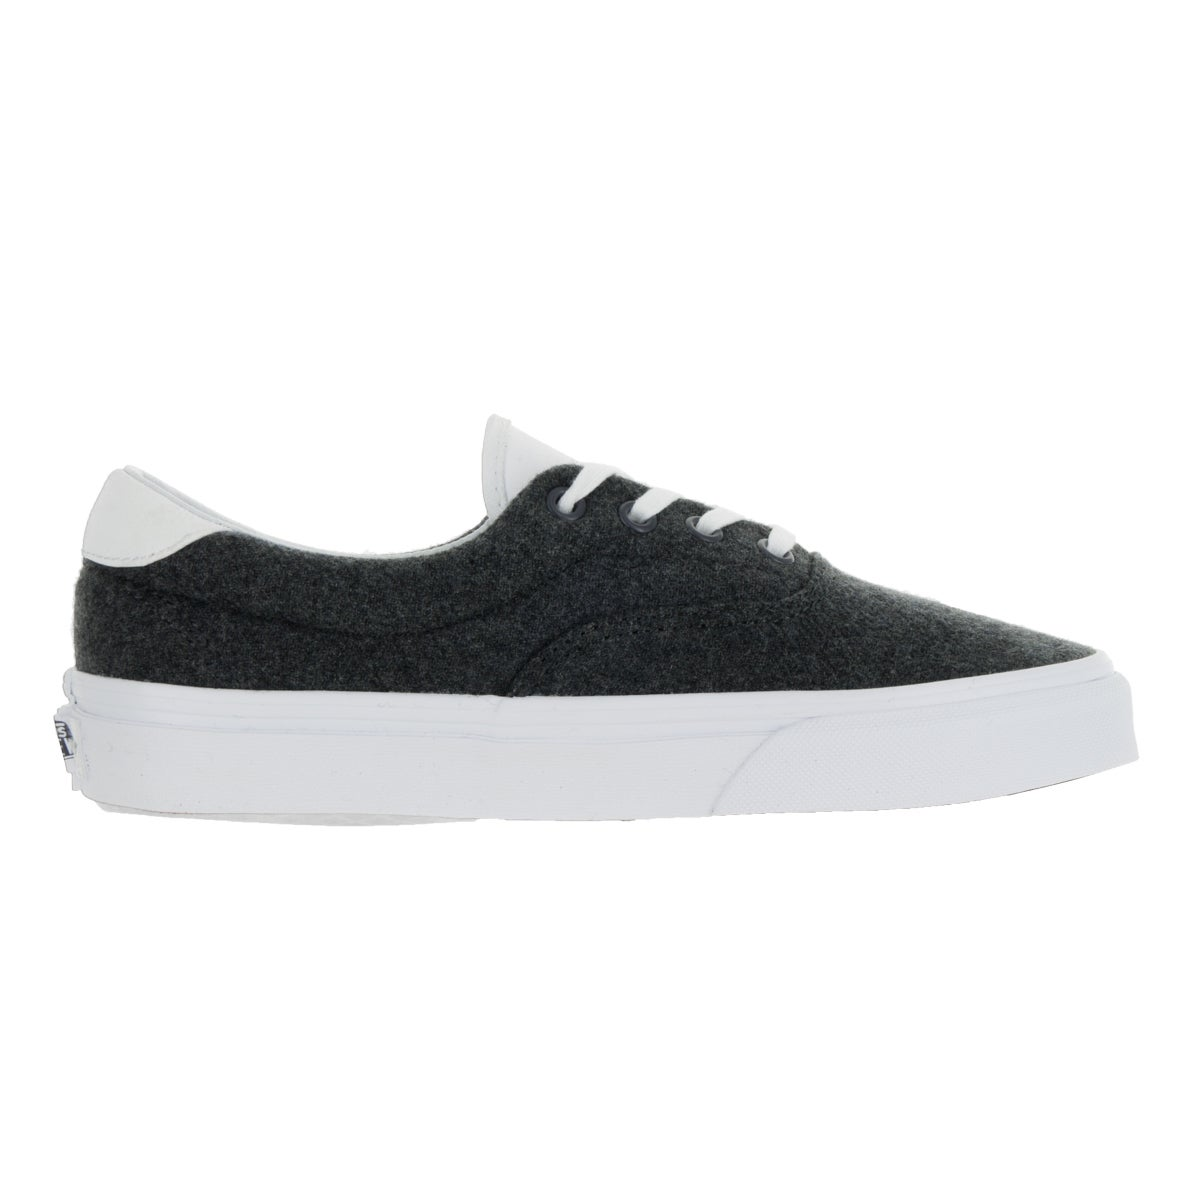 Shop Vans Unisex Era 59 (Varsity) Charcoal True W Skate Shoe - Free  Shipping Today - Overstock - 13395059 04a7164b9ccc